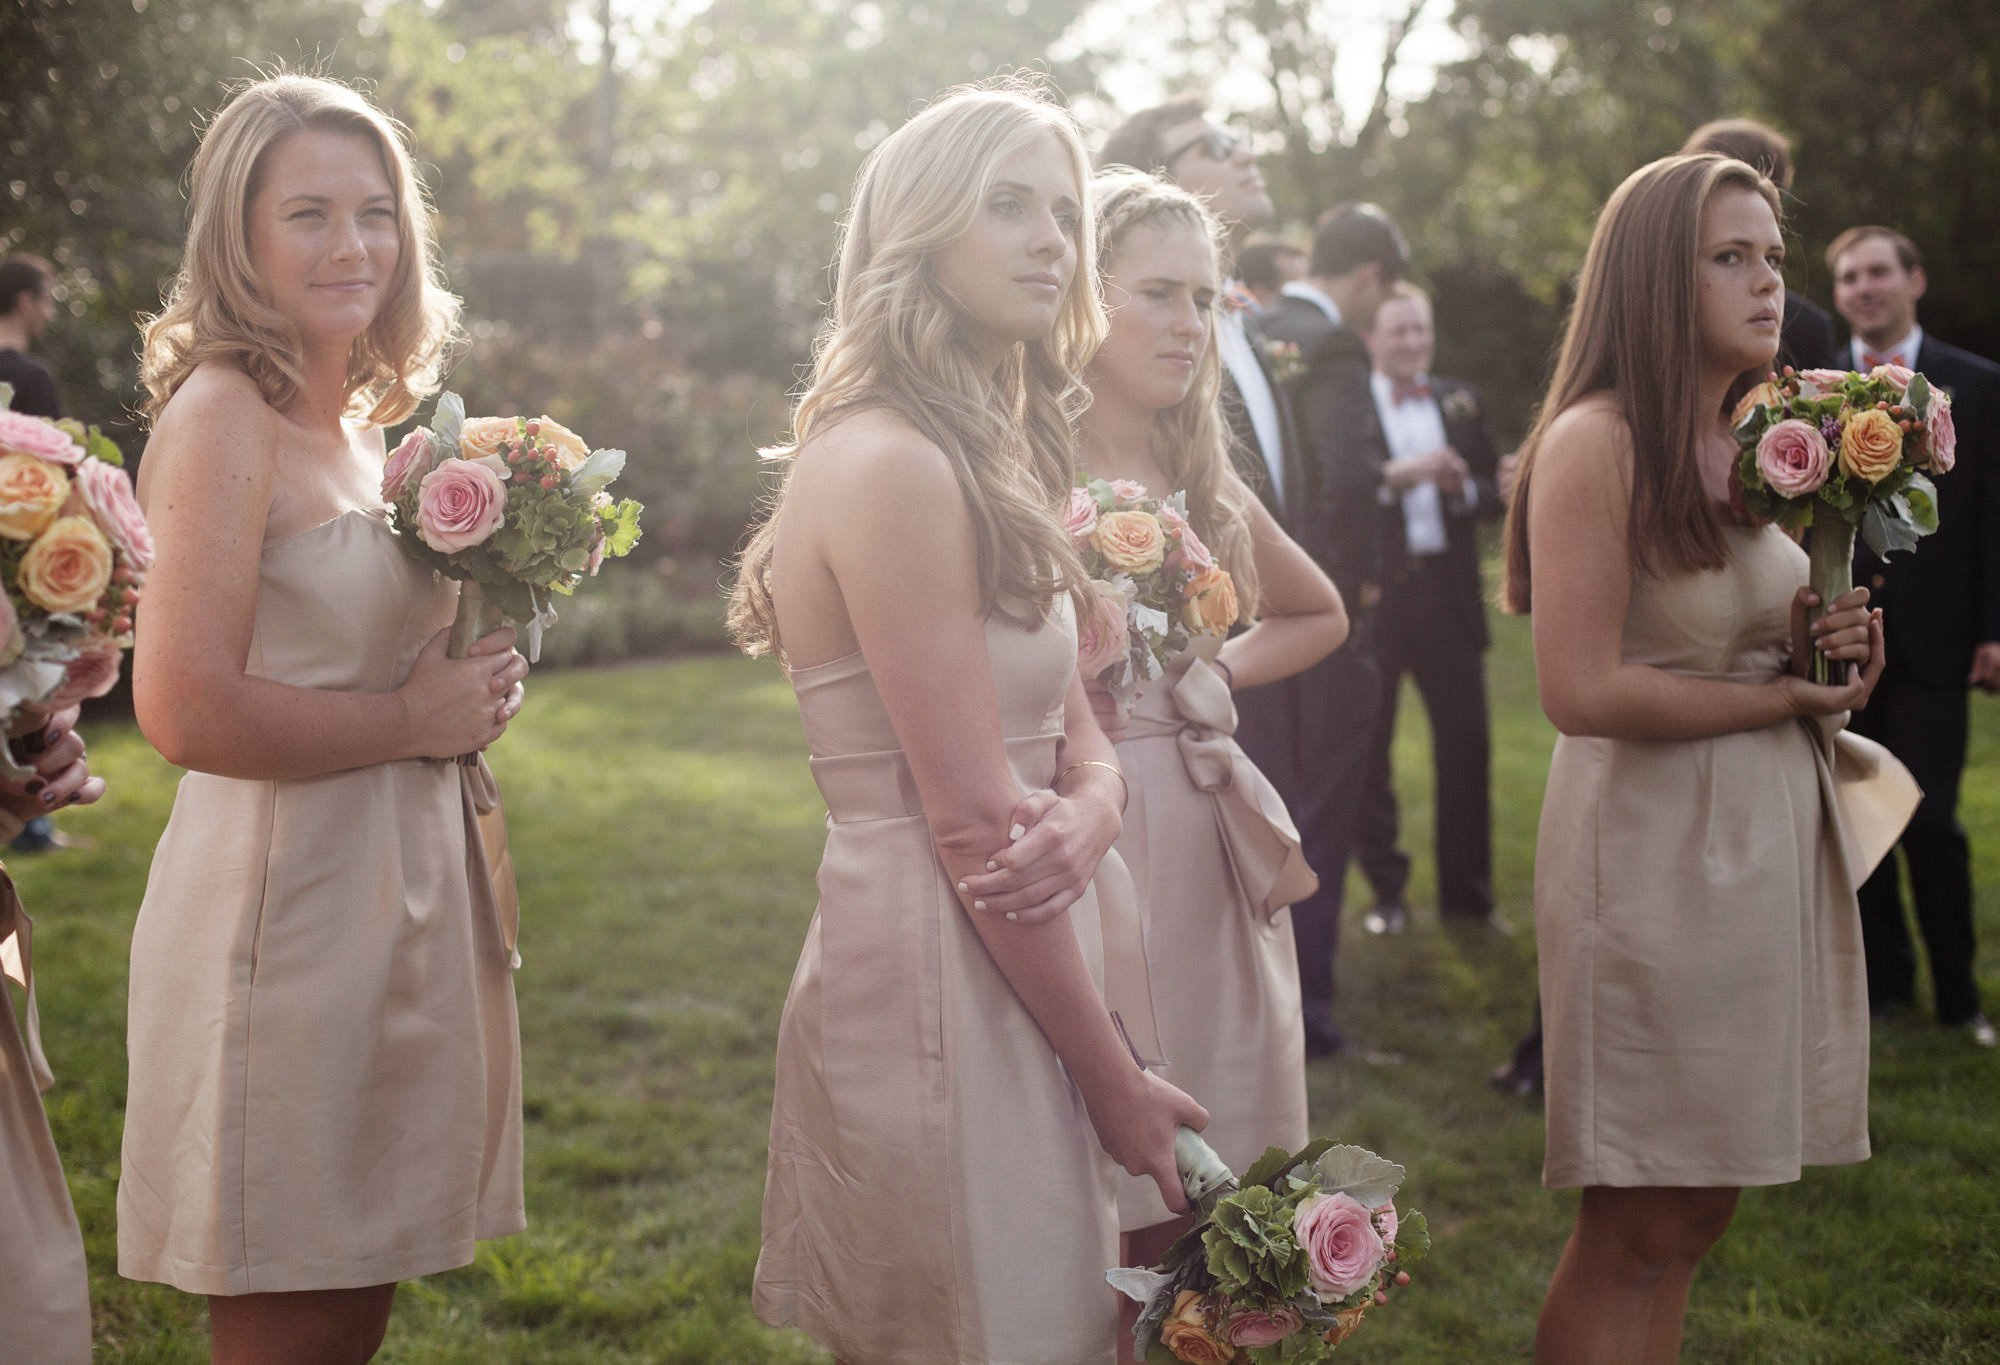 Bridesmaids wait for the portraits to begin following the wedding ceremony at Washington National Cathedral.